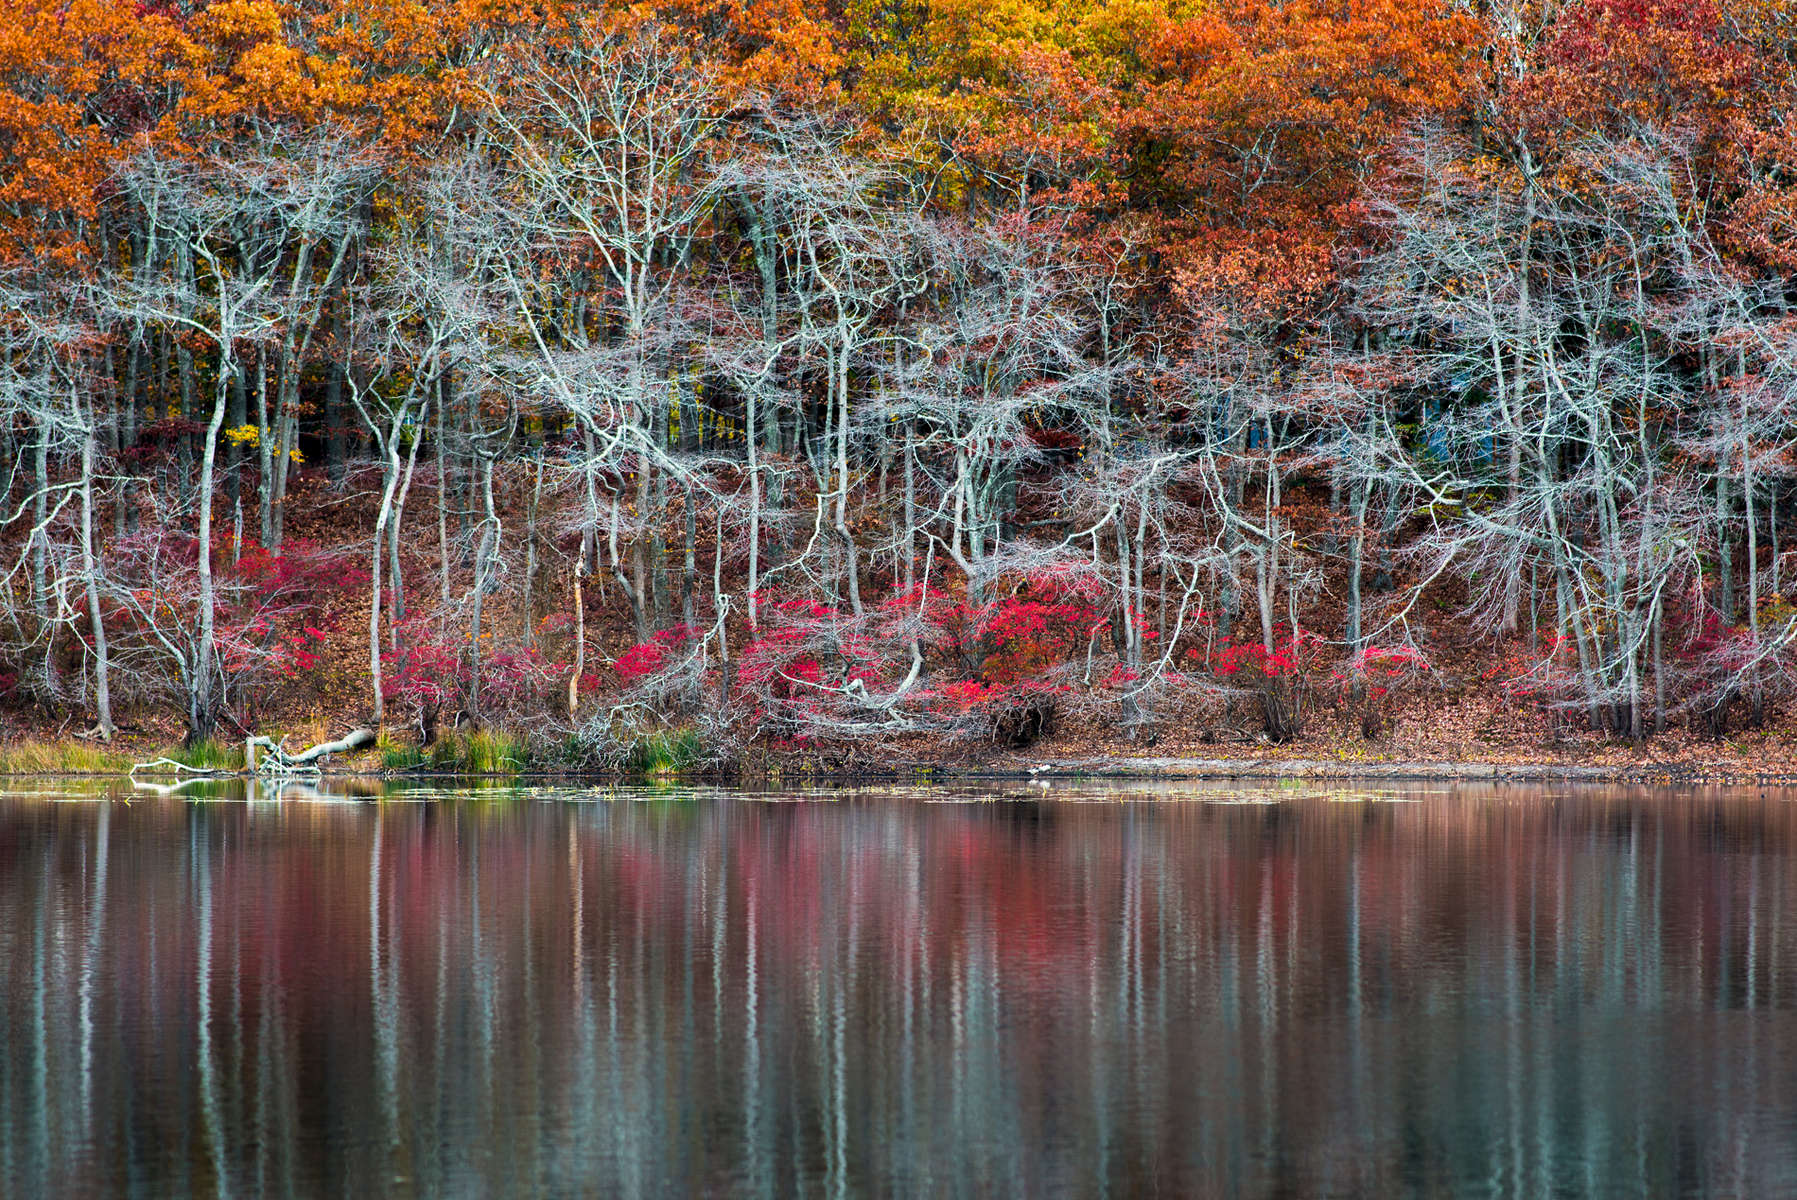 johnmazlish-fineart-sagharbor-autumnpond-reflection-nature